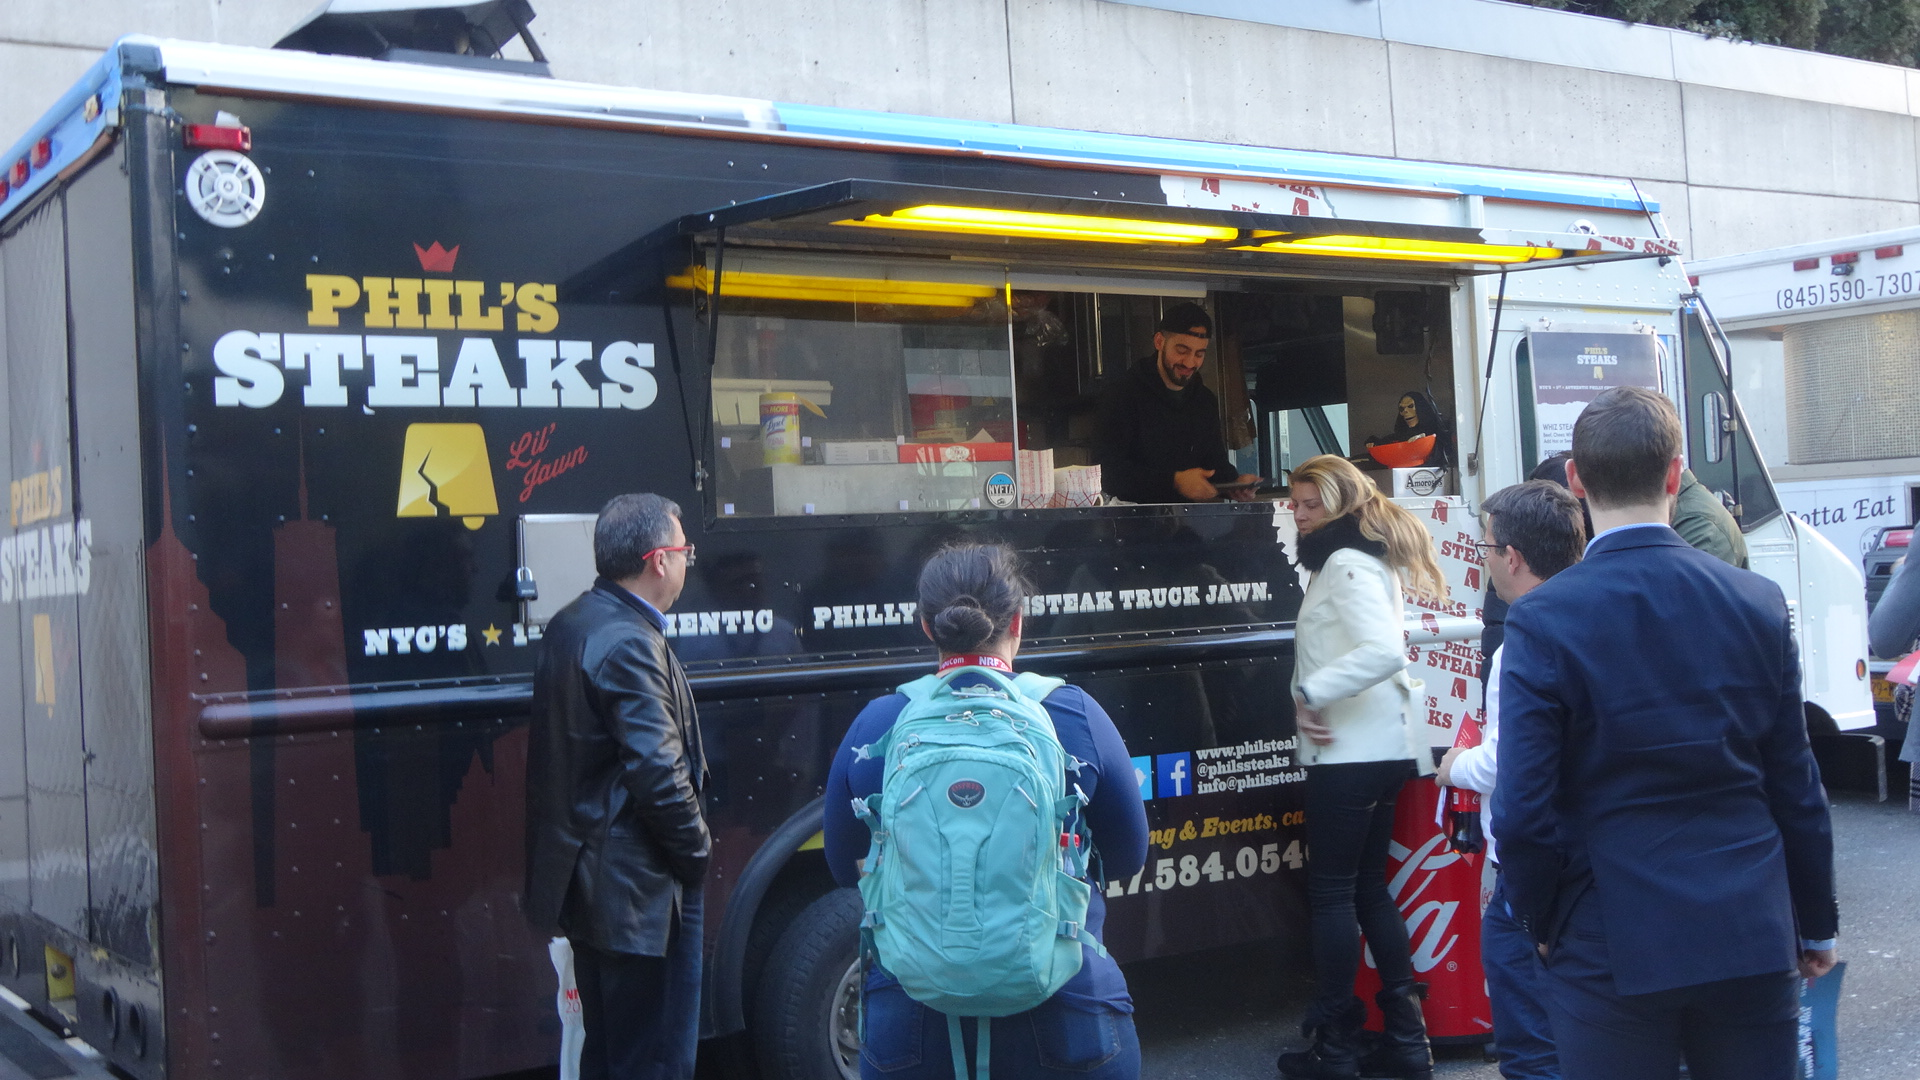 NRF convention attendees brave the cold for lunch at Food